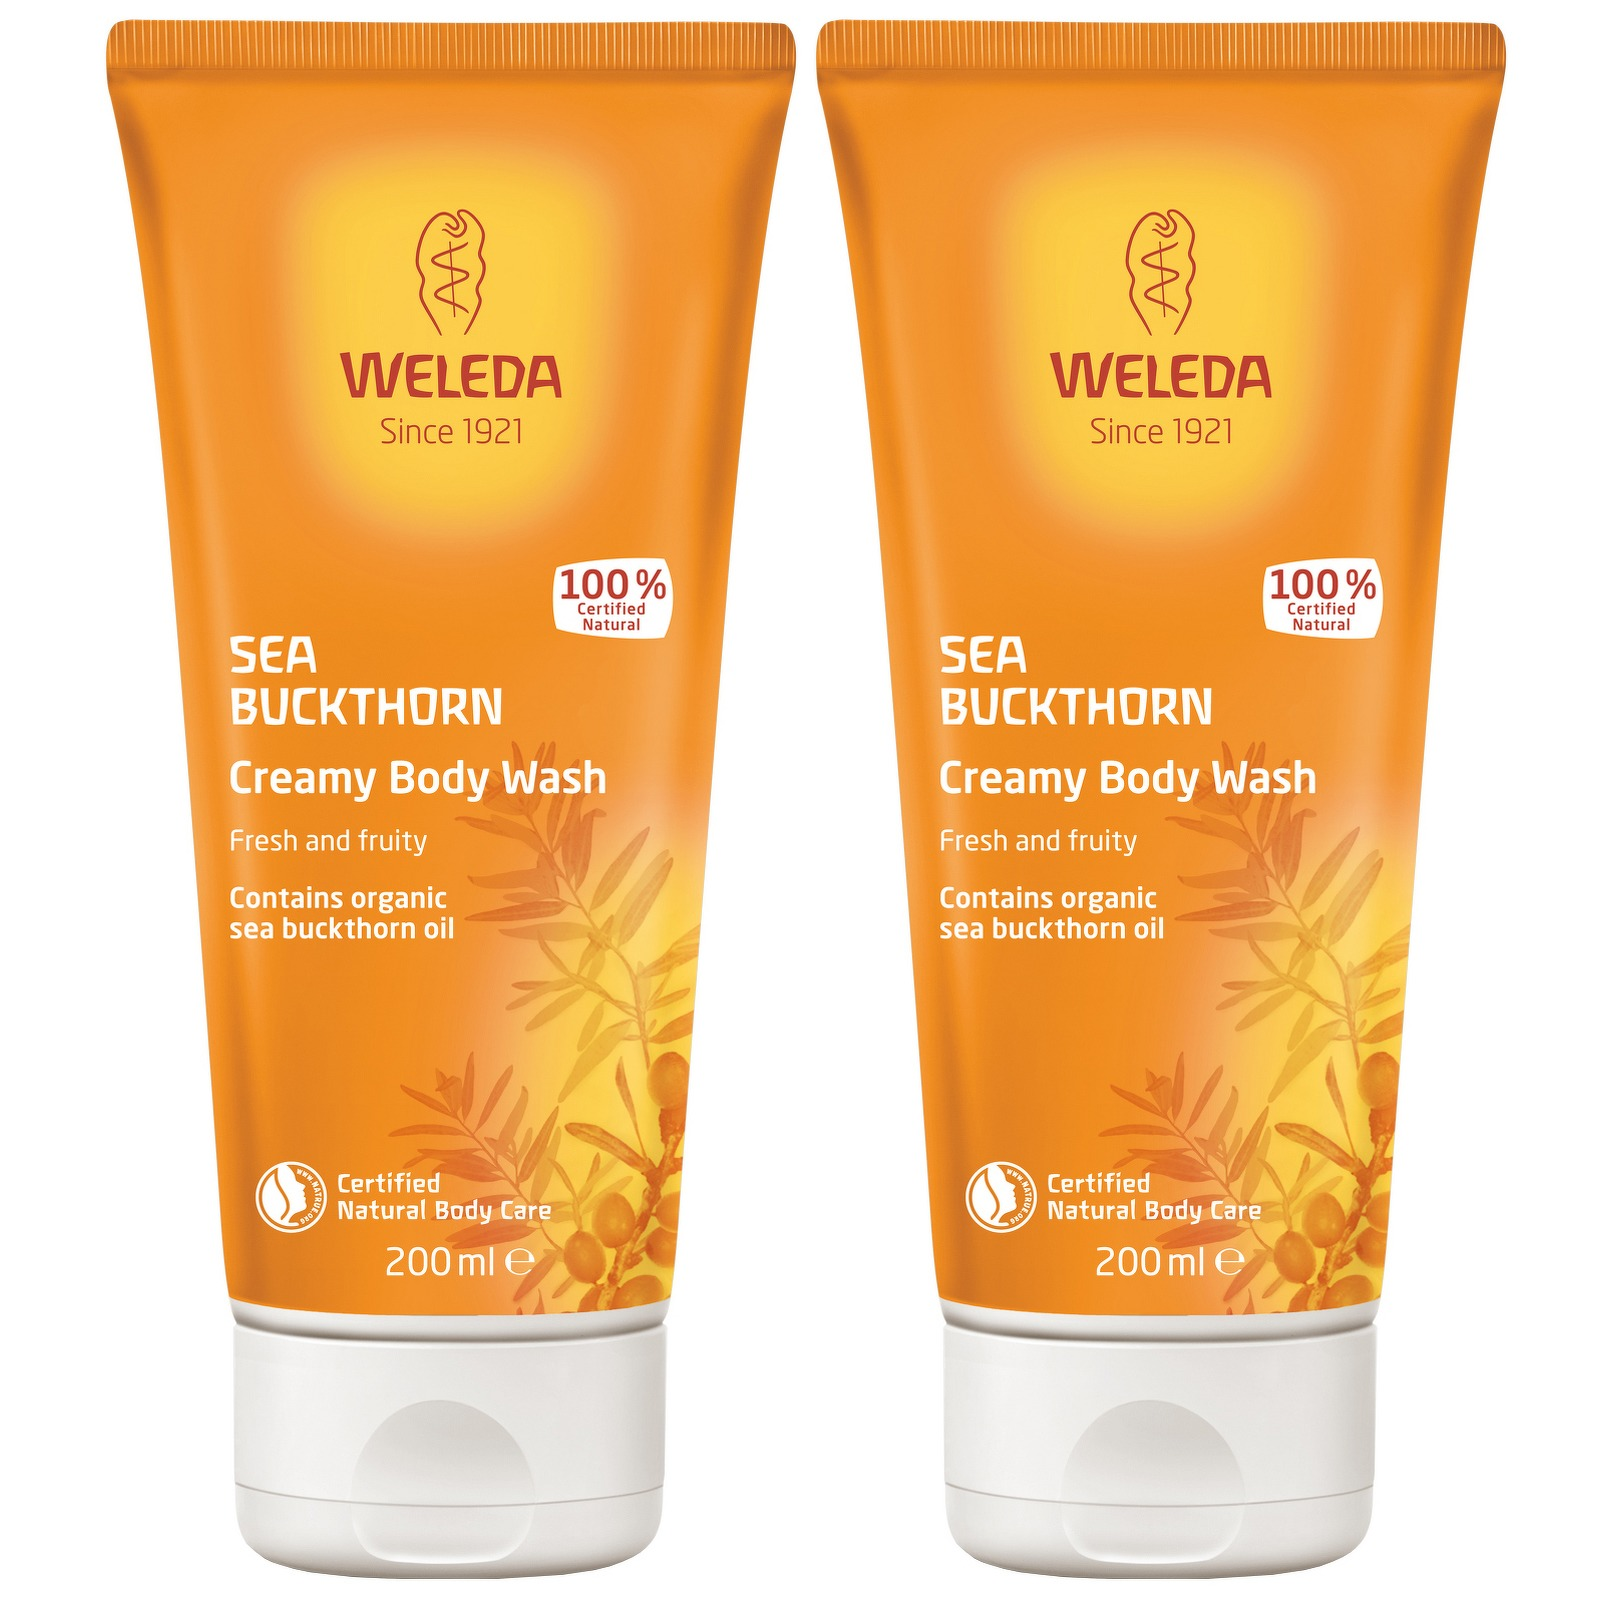 Weleda Body Care Sea Buckthorn Creamy Body Wash 200ml x 2